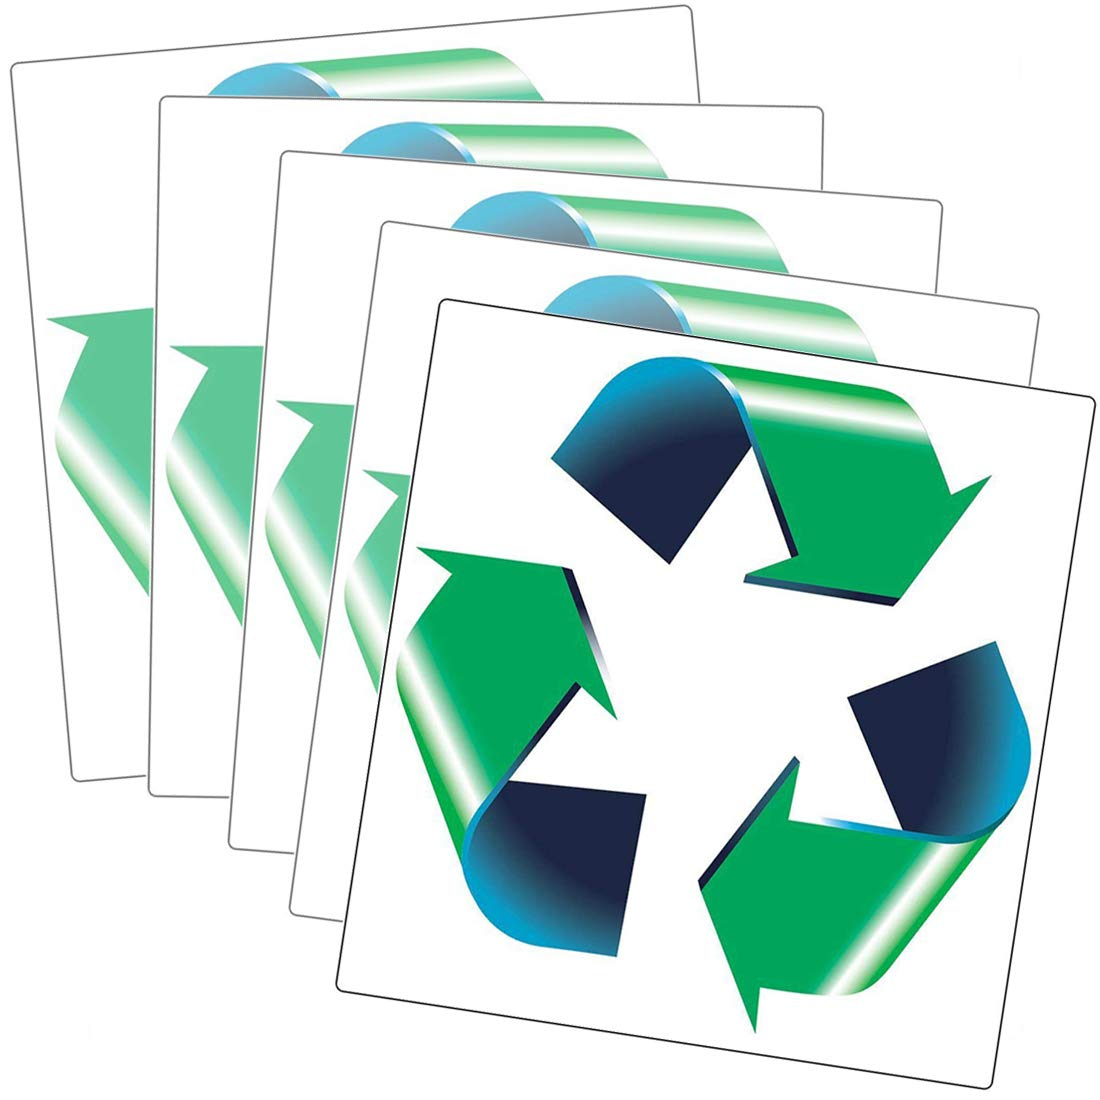 Retail genius oversized 8in recycle symbol sticker 5 pack for green white blue recycling bins cans large decals id recycled plastic paper cardboard